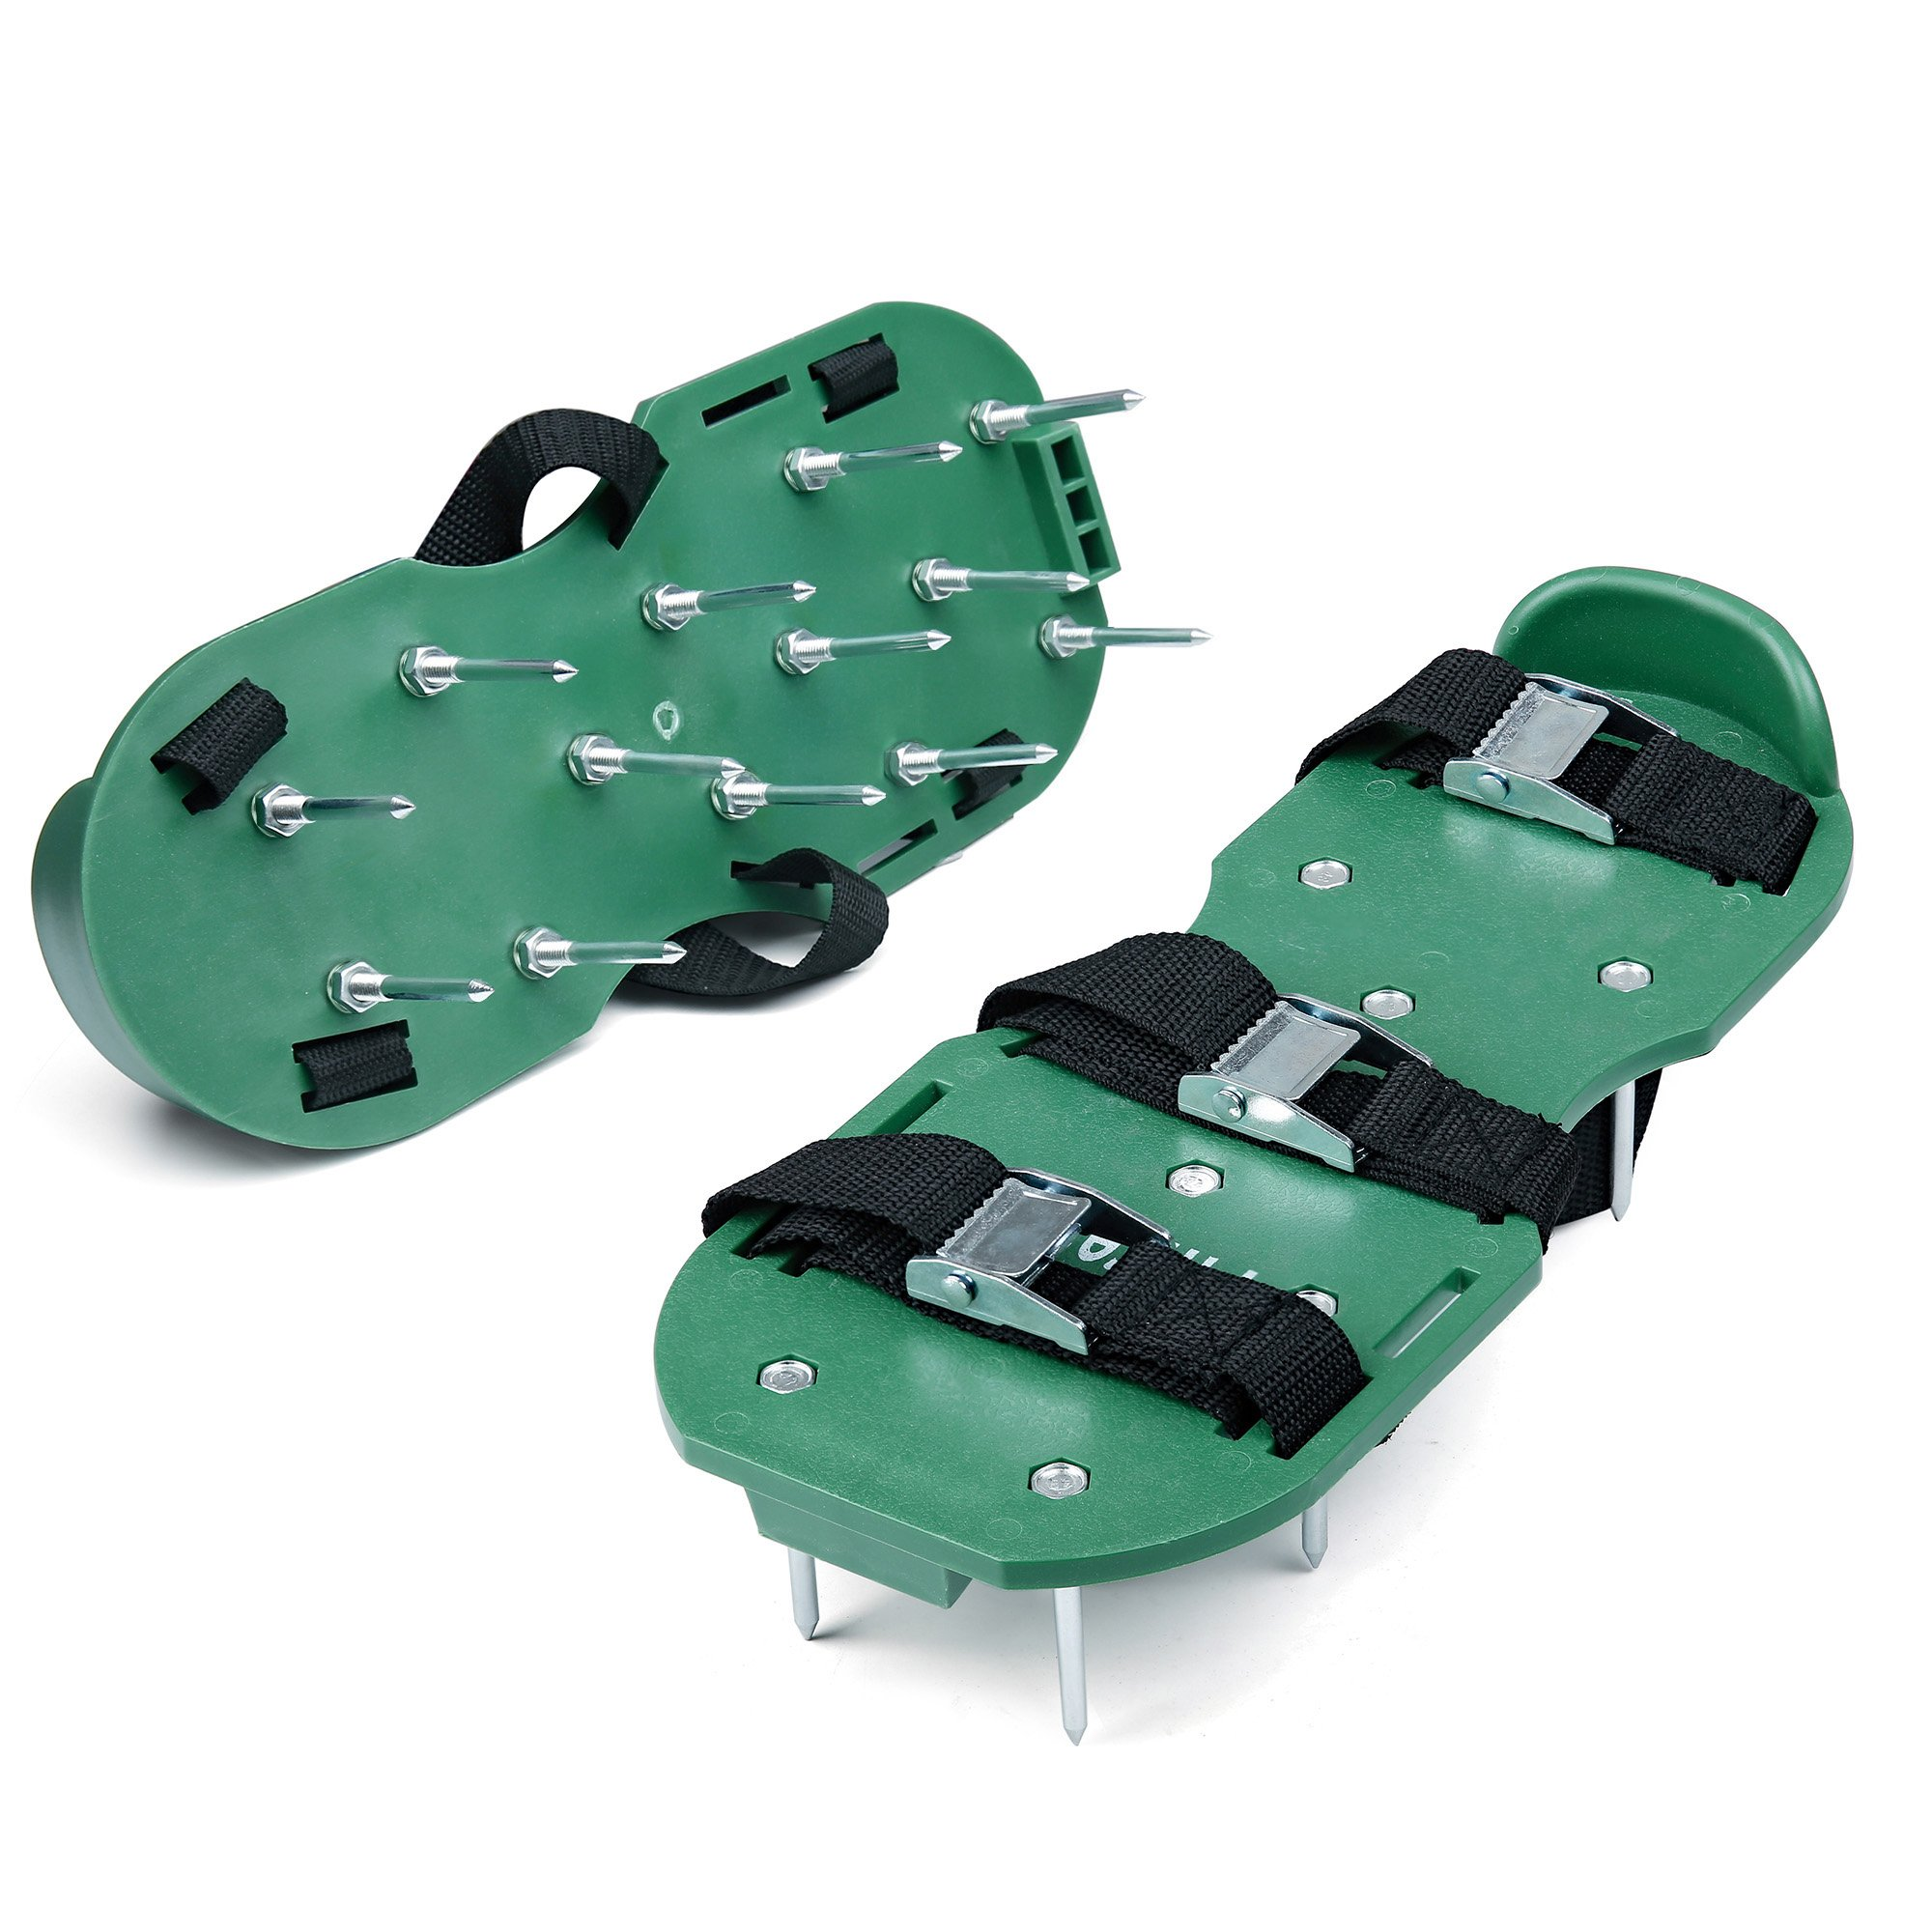 Finrezio Lawn Aerator Shoes,Spikes Lawn Aerator Sandals for Aerating by Finrezio (Image #1)